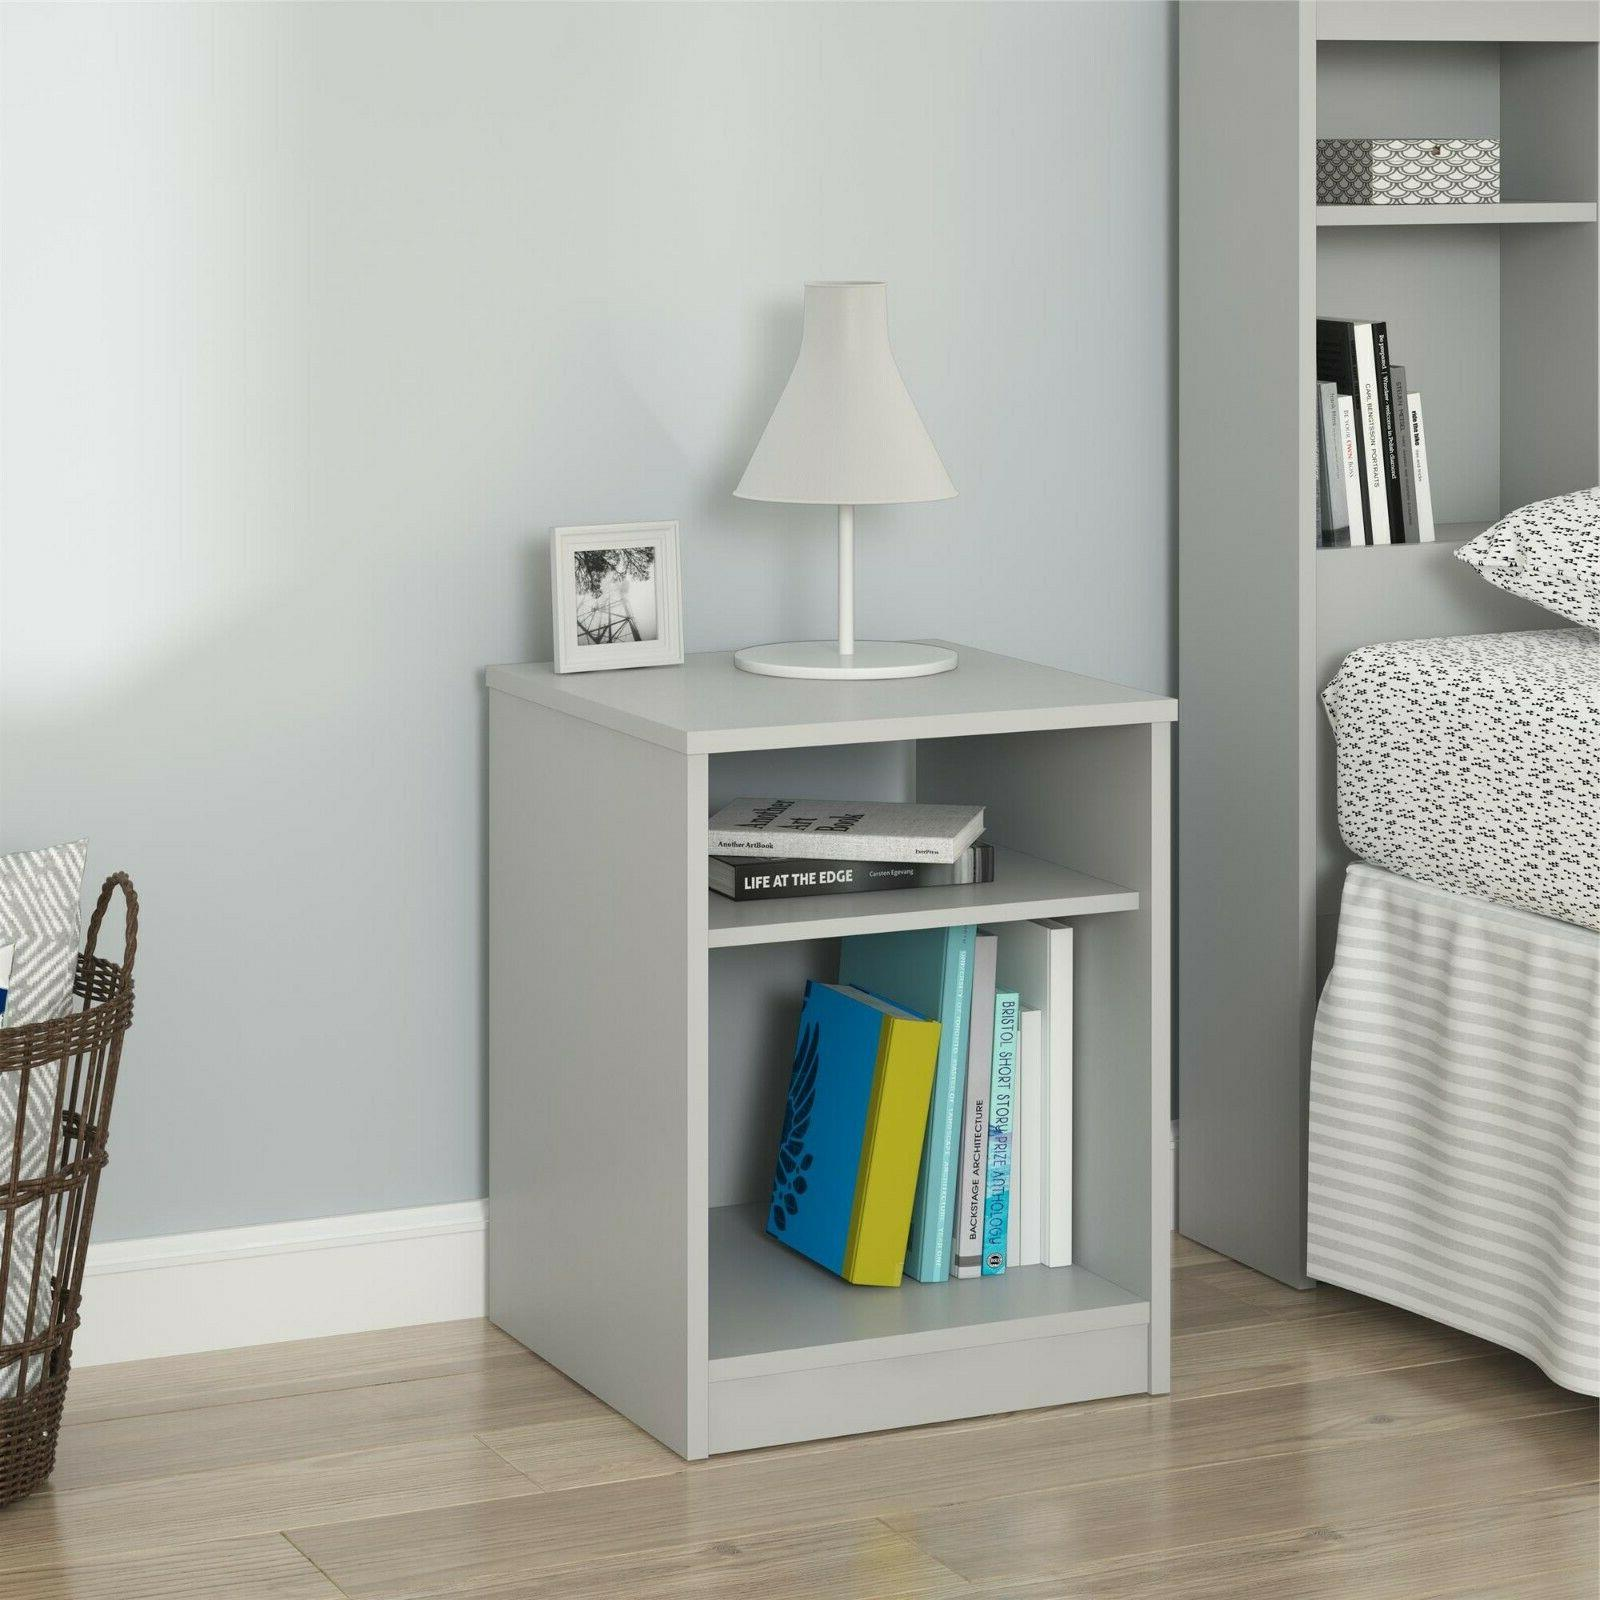 Nightstand and Cubby, 6 Bedroom Furniture